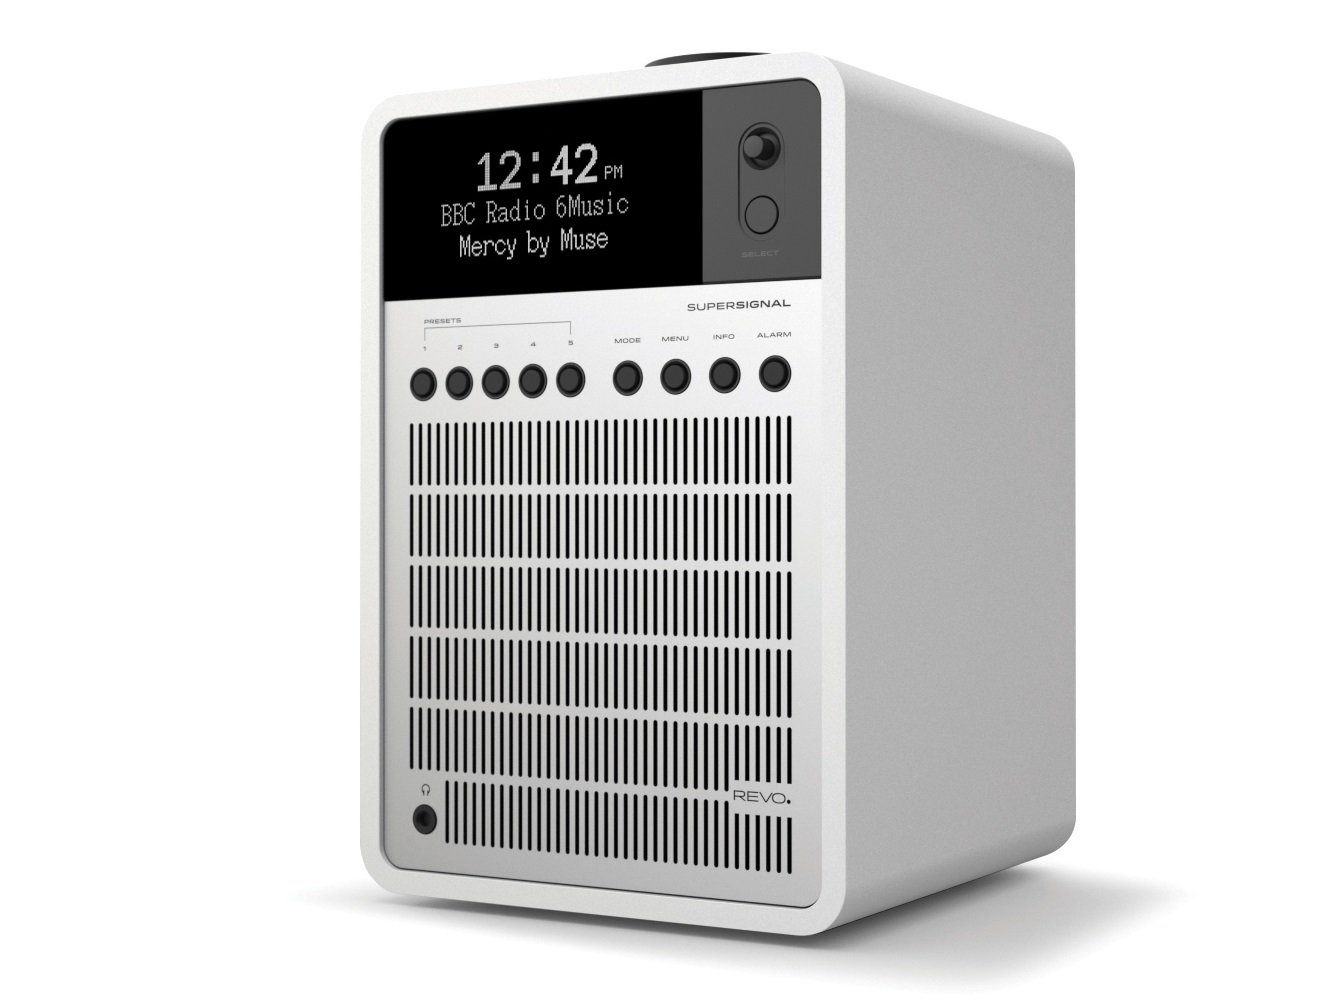 REVO SuperSignal Deluxe Radio with DAB/DAB+/FM Reception, Digital Alarm and Bluetooth Wireless Streaming - Matte White/Silver